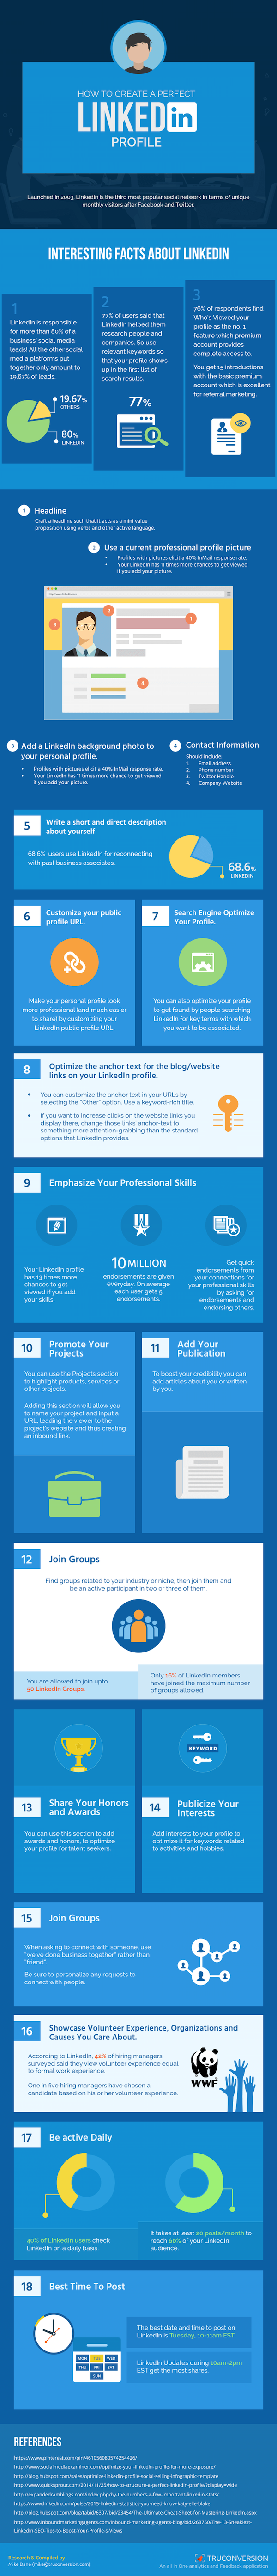 personal branding: LinkedIn Profile Infographic